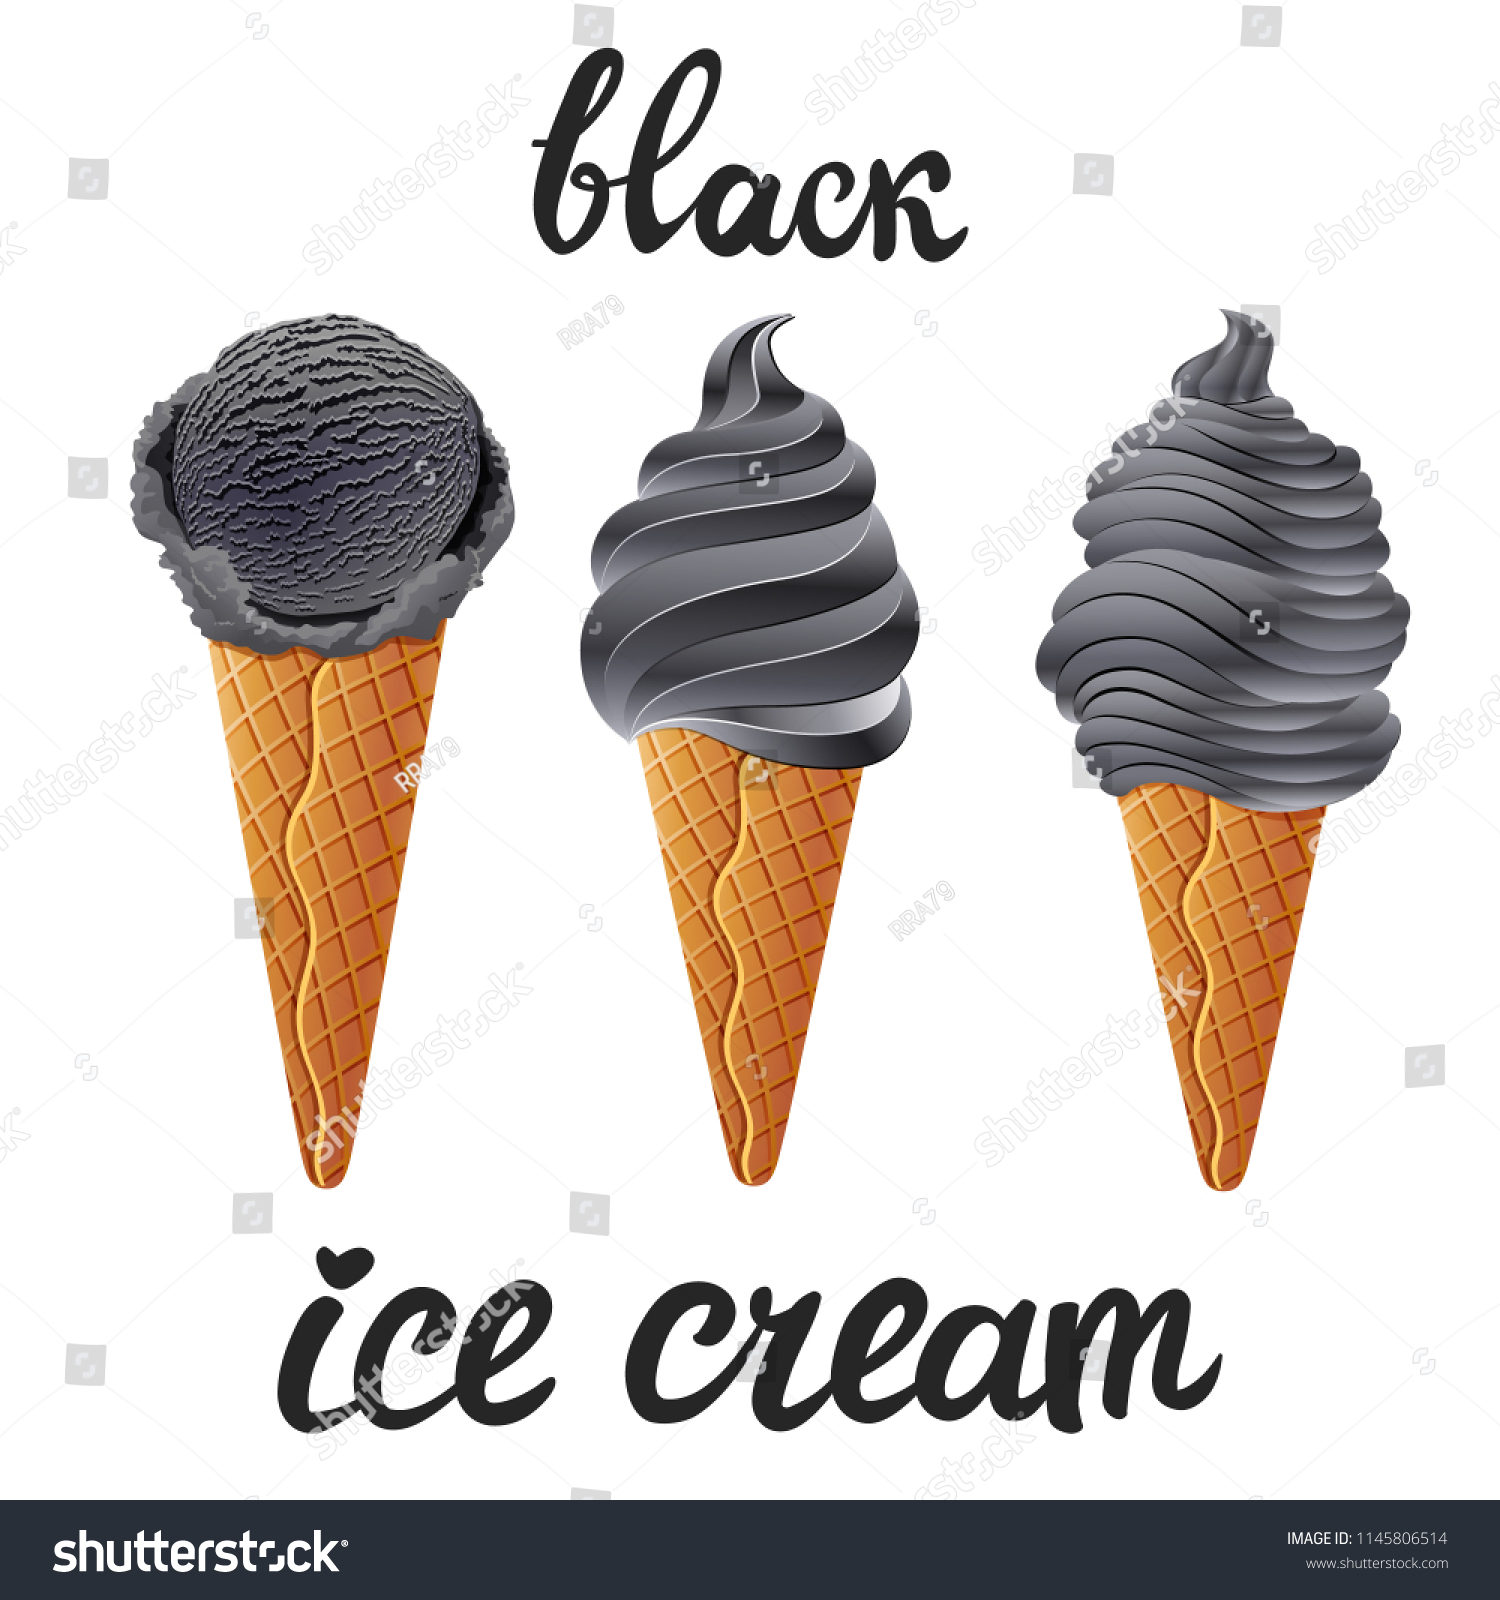 vector set black ice cream dark stock vector royalty free 1145806514 https www shutterstock com image vector vector set black ice cream dark 1145806514